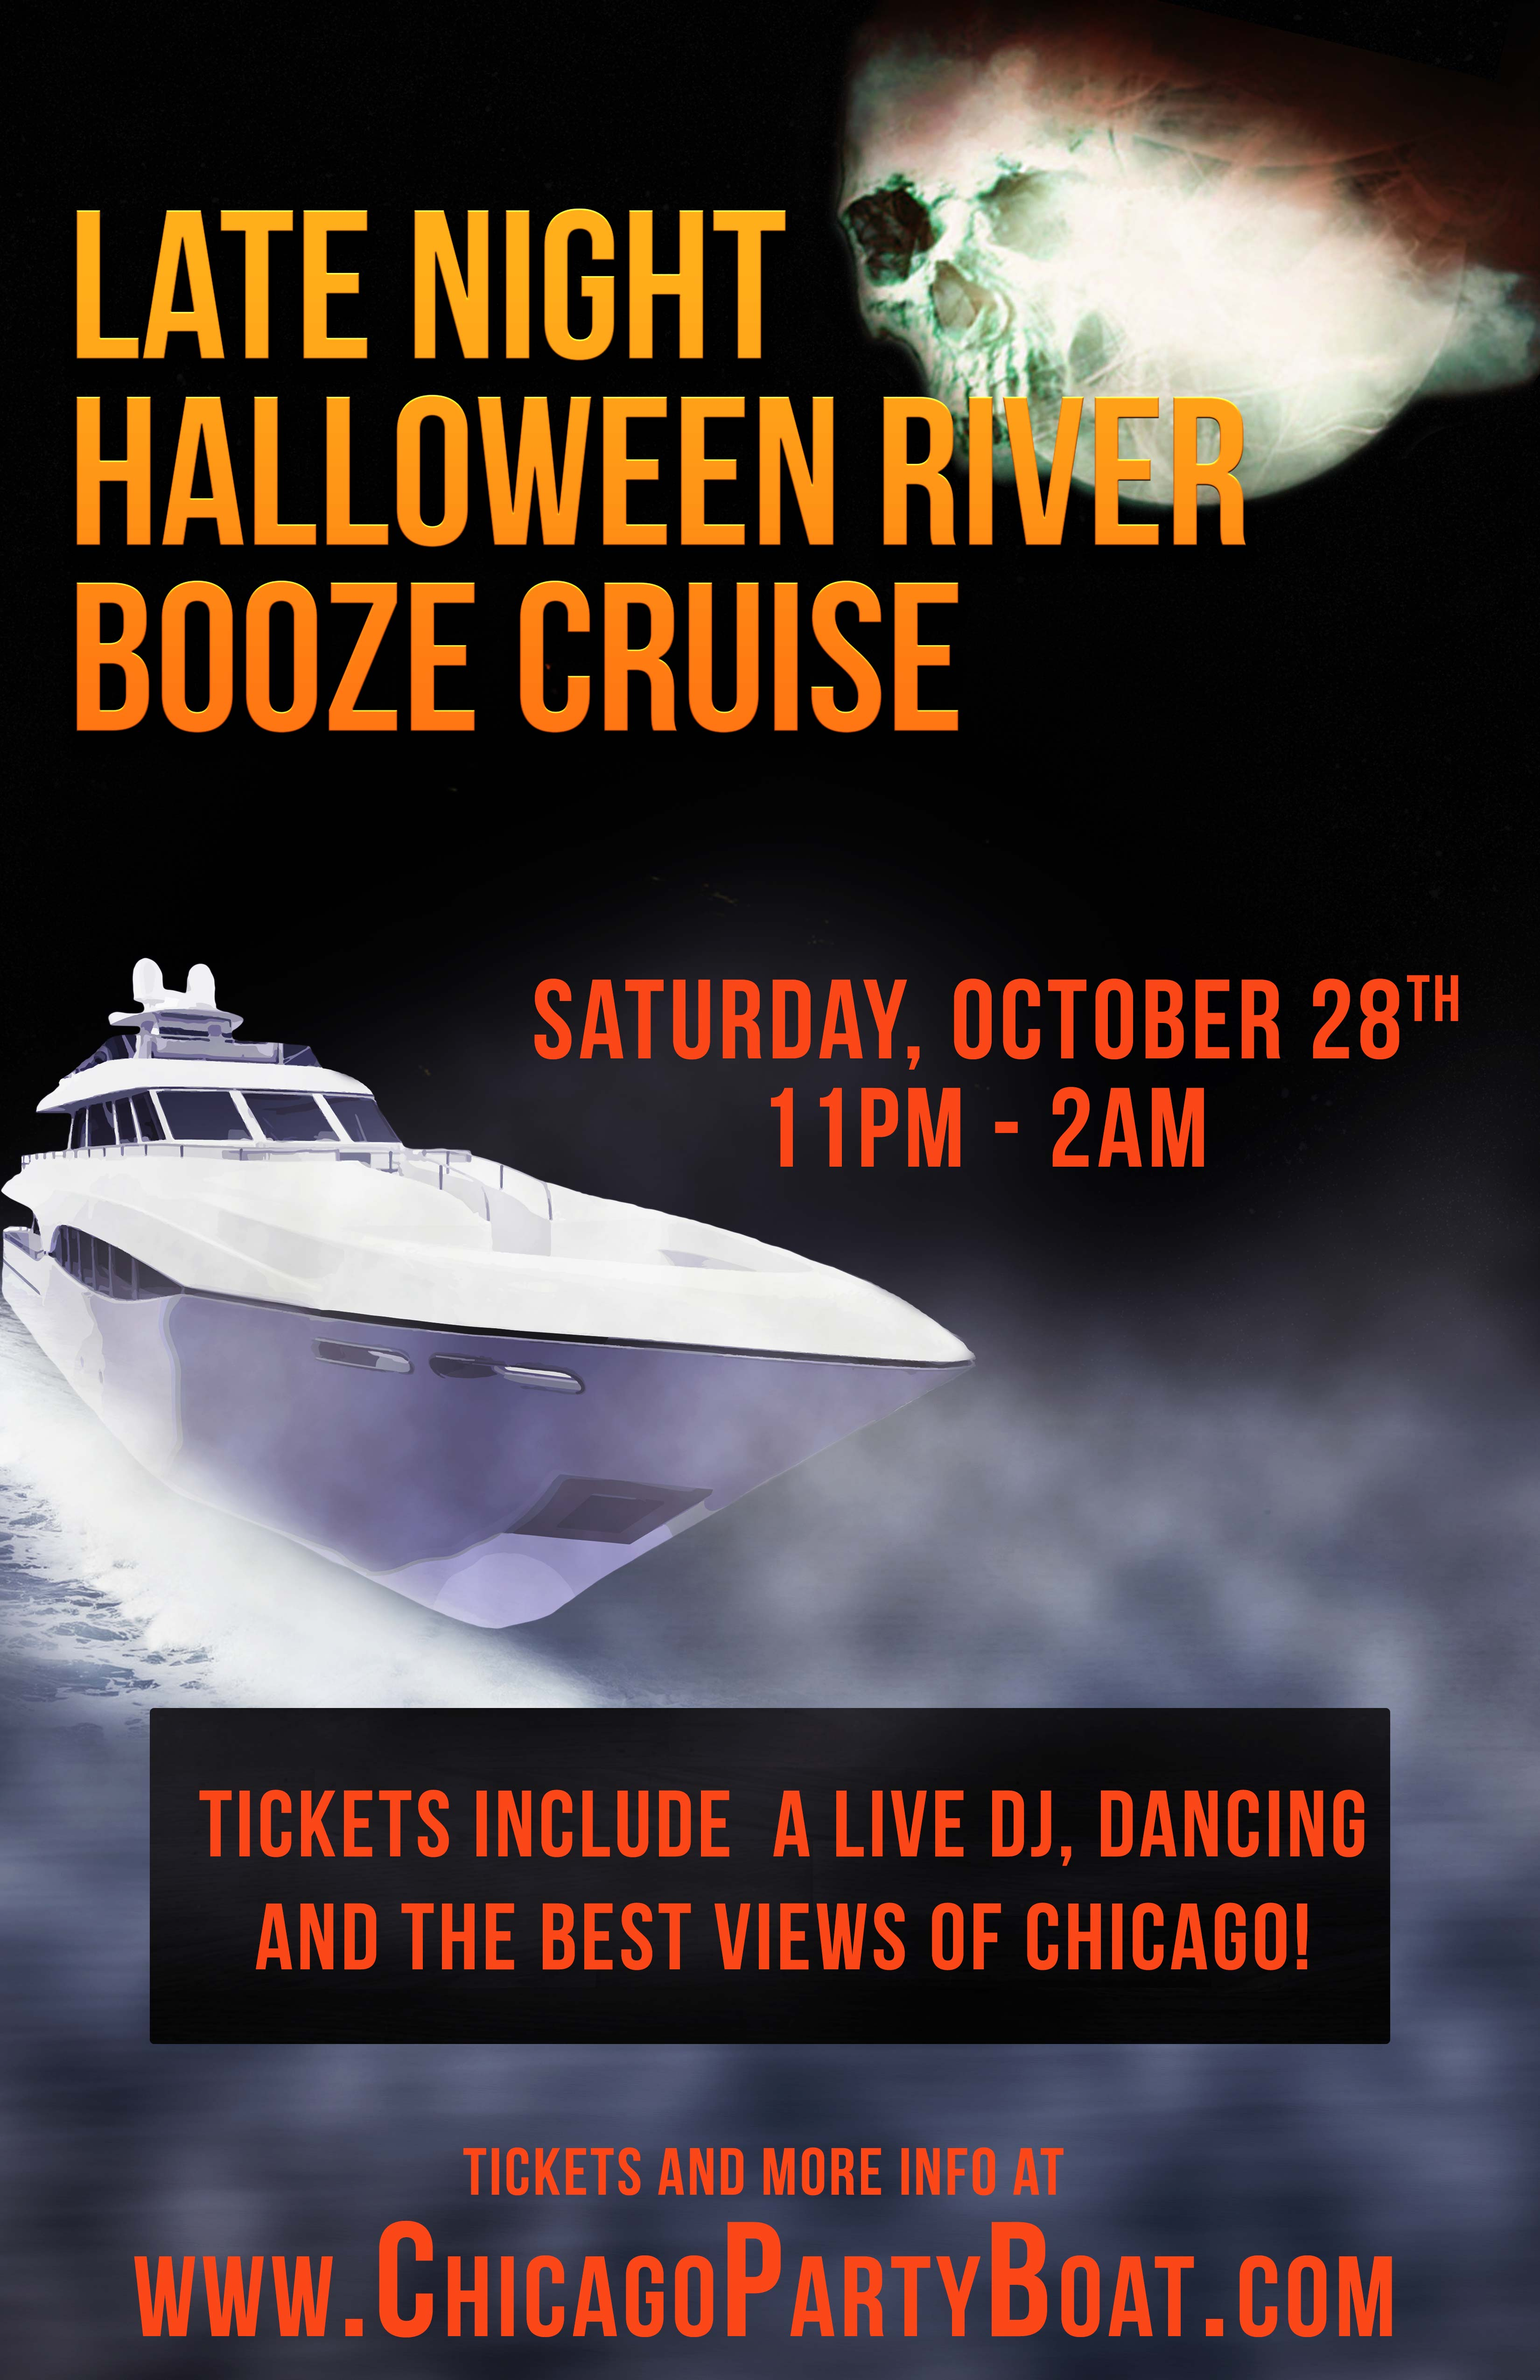 Late Night Halloween River Booze Cruise Party - Tickets include a Live DJ, Dancing, and the best views of the Chicago skyline!